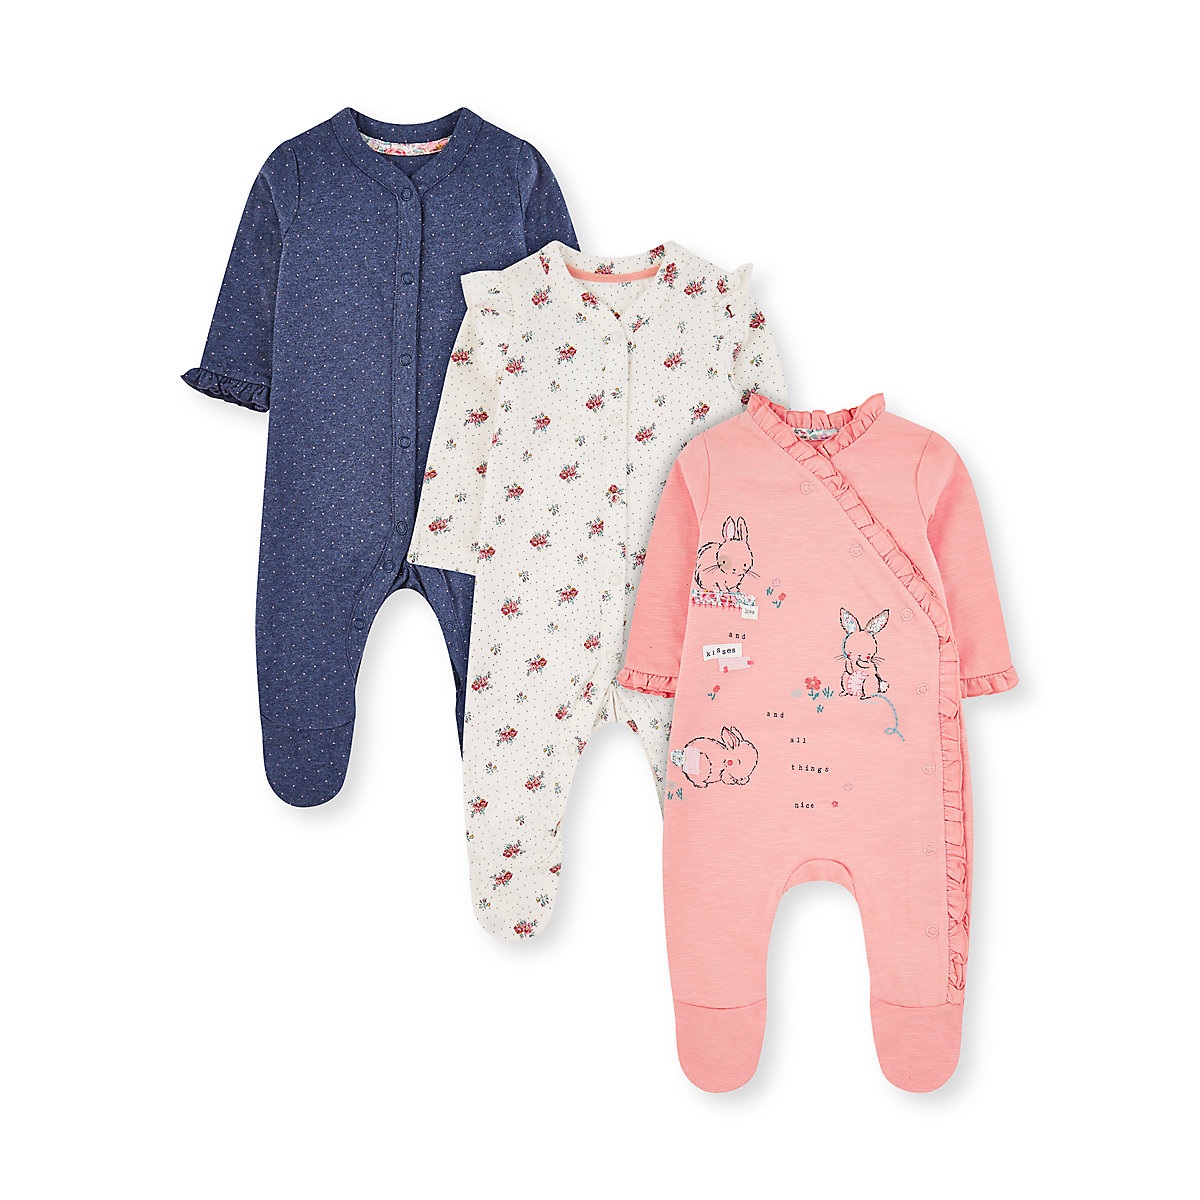 pink bunny. white floral and blue spot frill sleepsuits - 3 pack